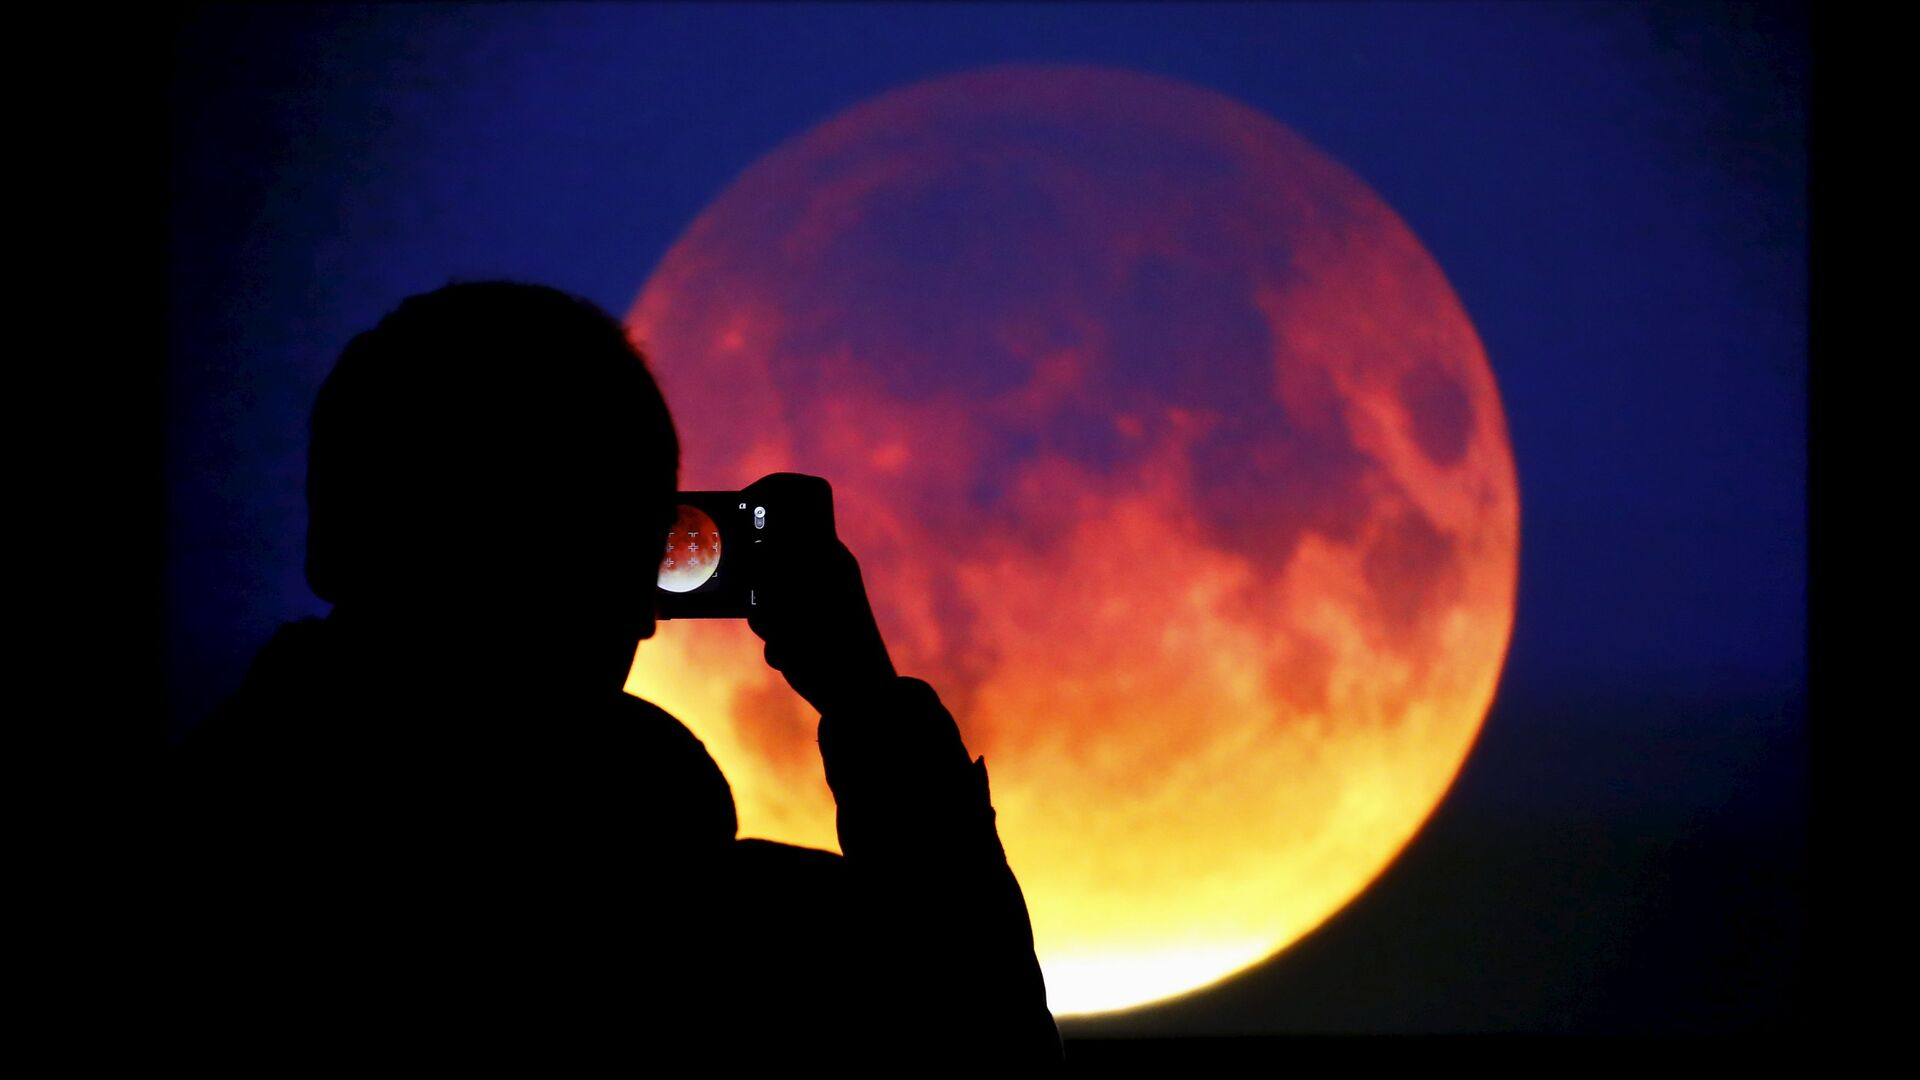 A man takes picture of the screen displaying the moon, appearing in a dim red colour, which is covered by the Earth's shadow during a total lunar eclipse in Warsaw, Poland September 28, 2015 - Sputnik Italia, 1920, 25.05.2021